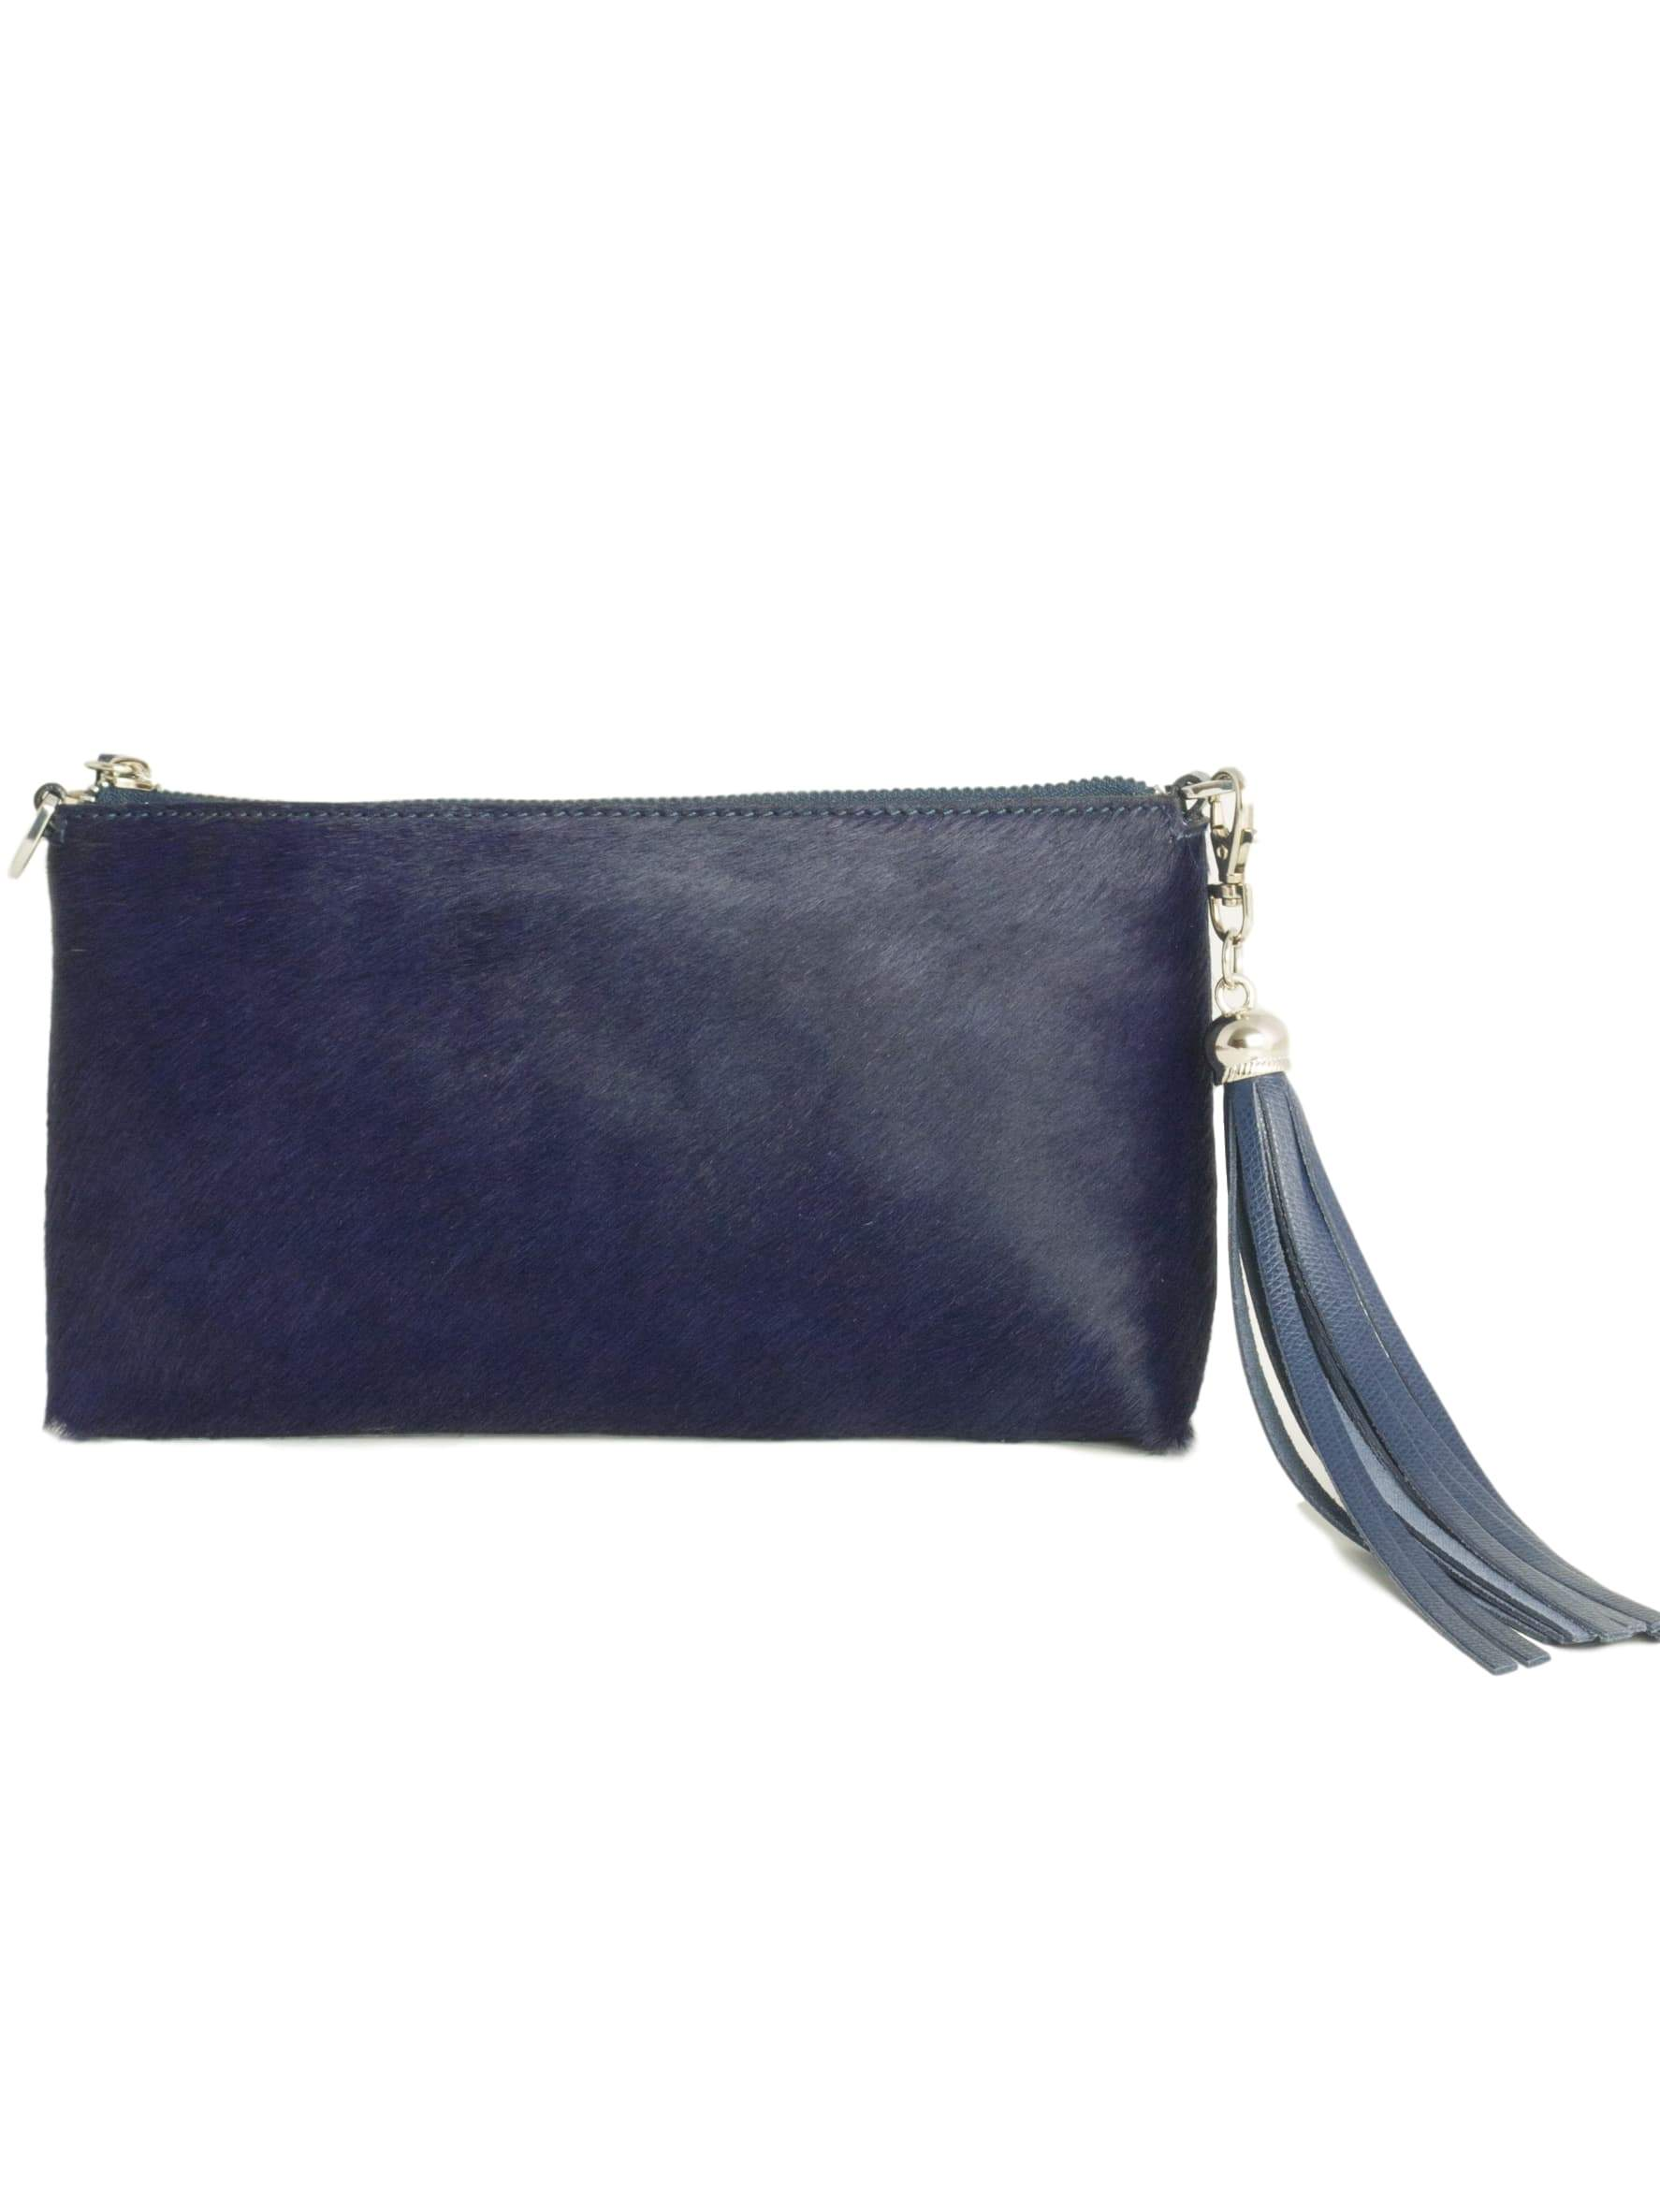 Clutch bag - Navy Furry Forget Me Not